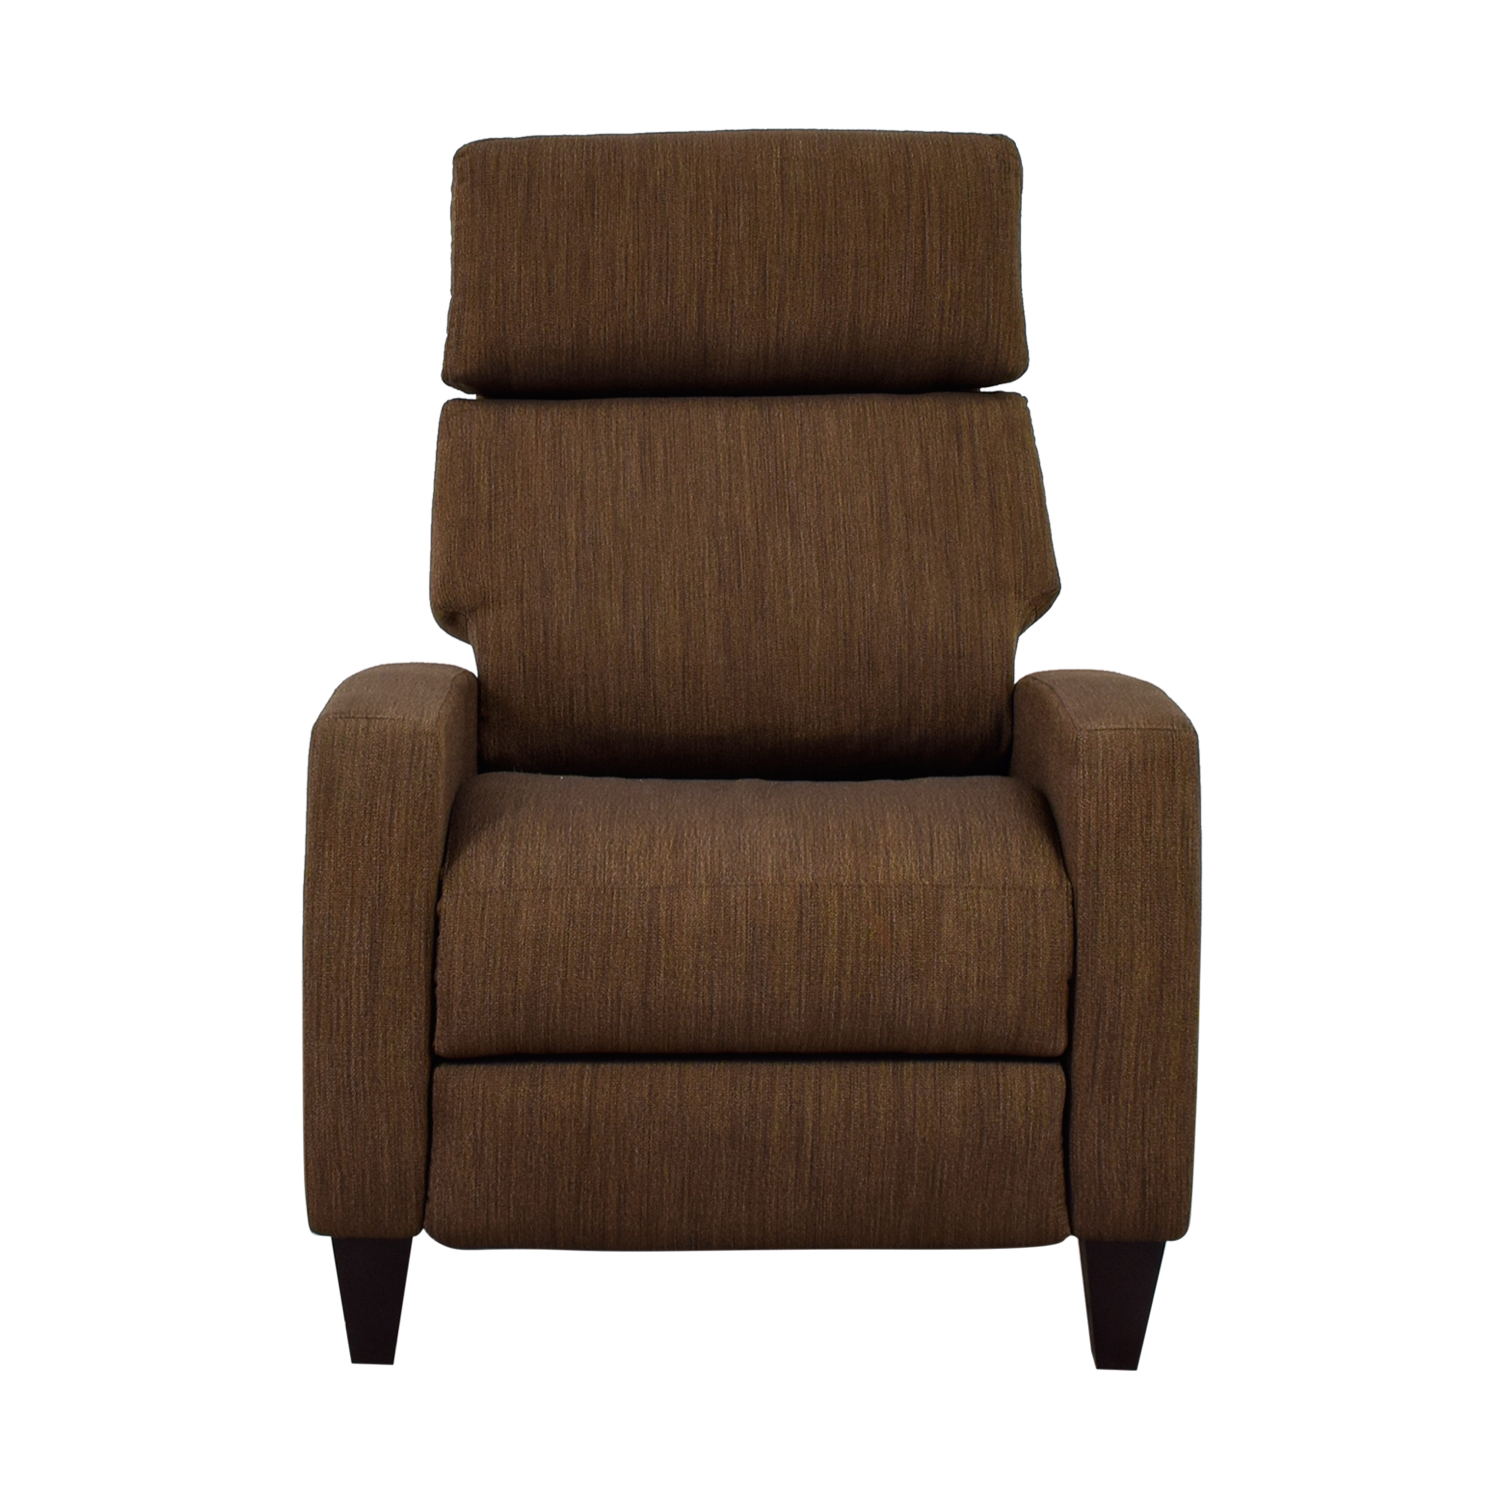 Astonishing 78 Off American Leather American Leather Brown Tweed Electric Recliner Chair Chairs Bralicious Painted Fabric Chair Ideas Braliciousco